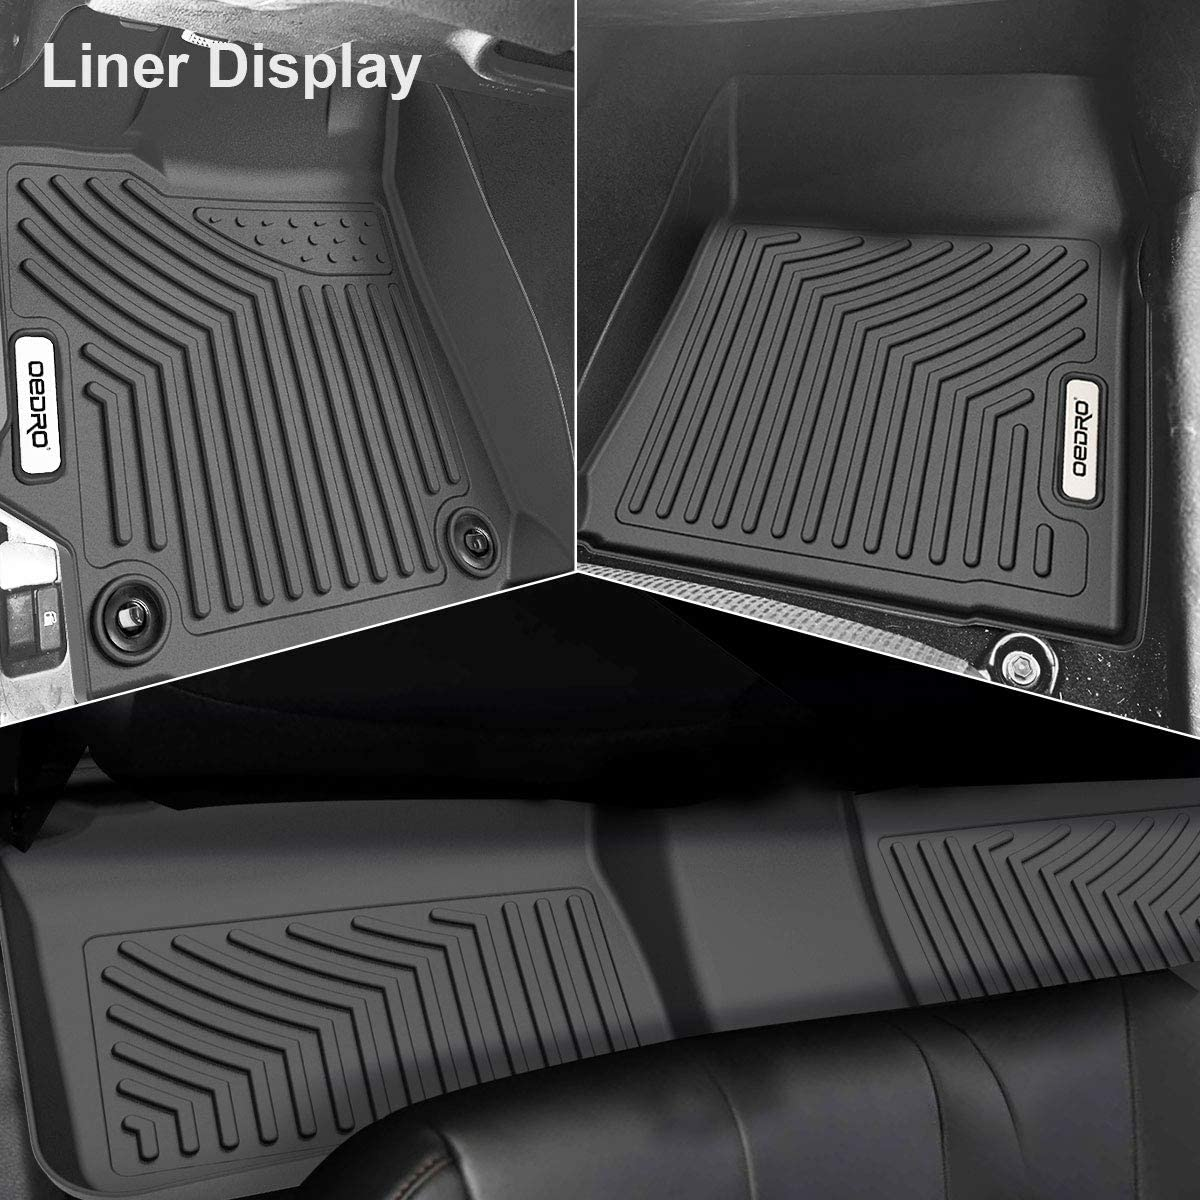 oEdRo Floor Mats Compatible with 2015-2017 Toyota Camry Standard Models Rear Full Set Liners Standard Models Only Unique Black TPE All-Weather Guard Includes 1st and 2nd Row: Front